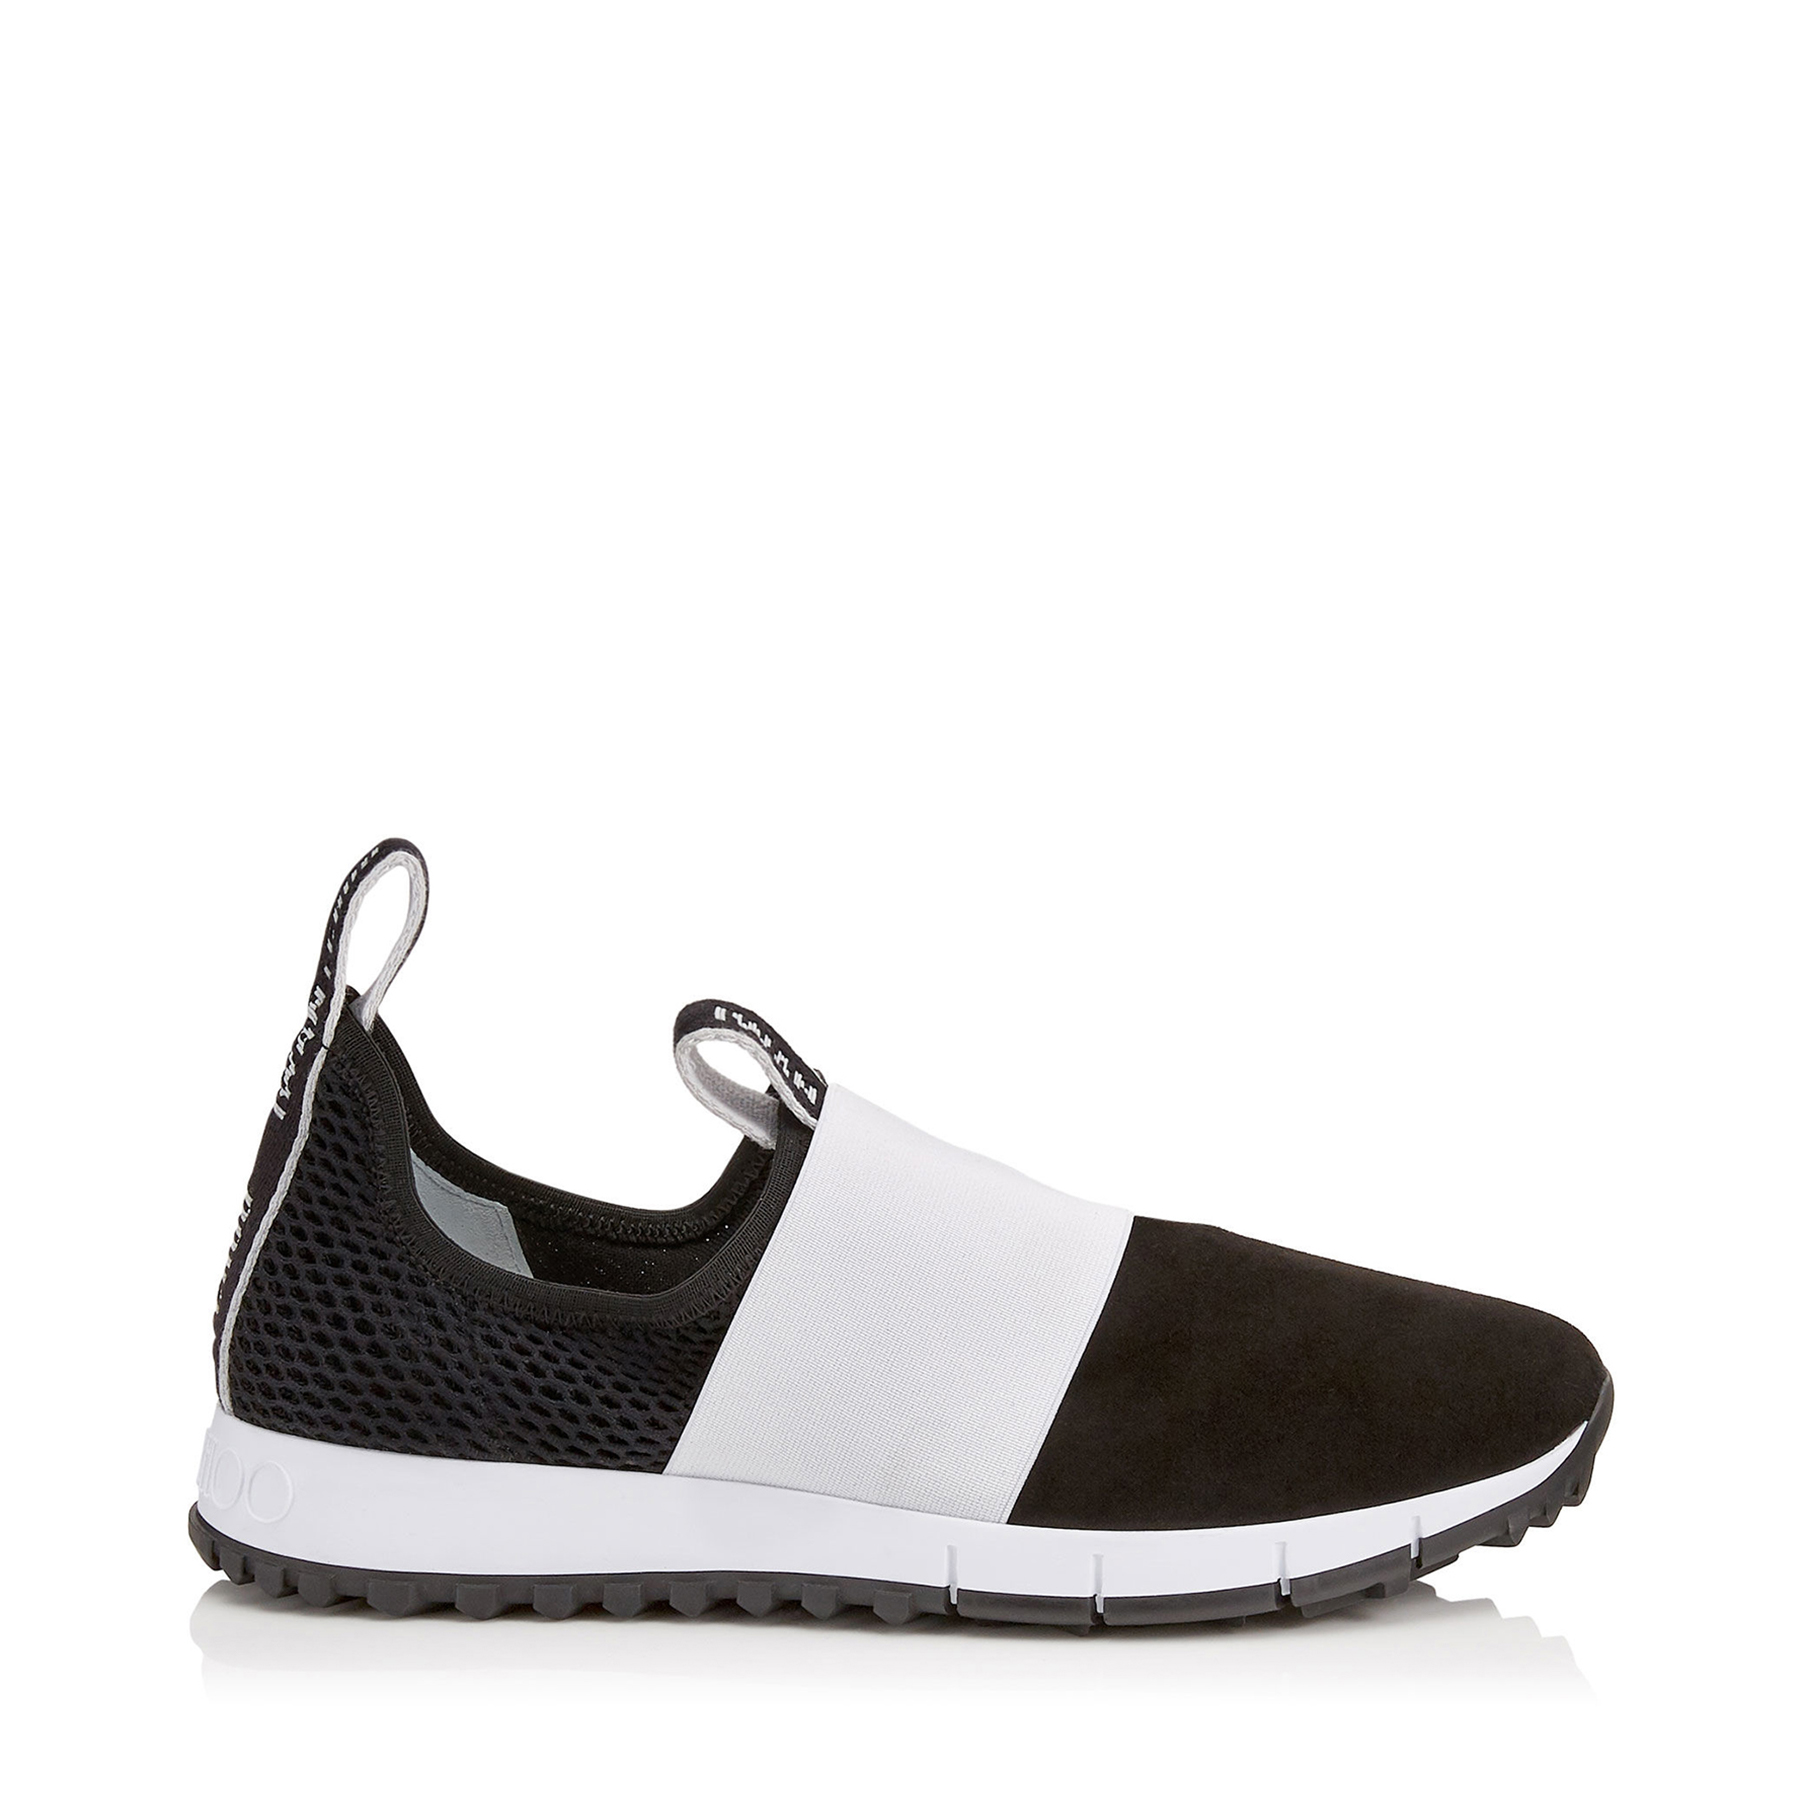 OAKLAND/F Black Mesh and Suede Trainers with White Logo Pull Detailing by Jimmy Choo